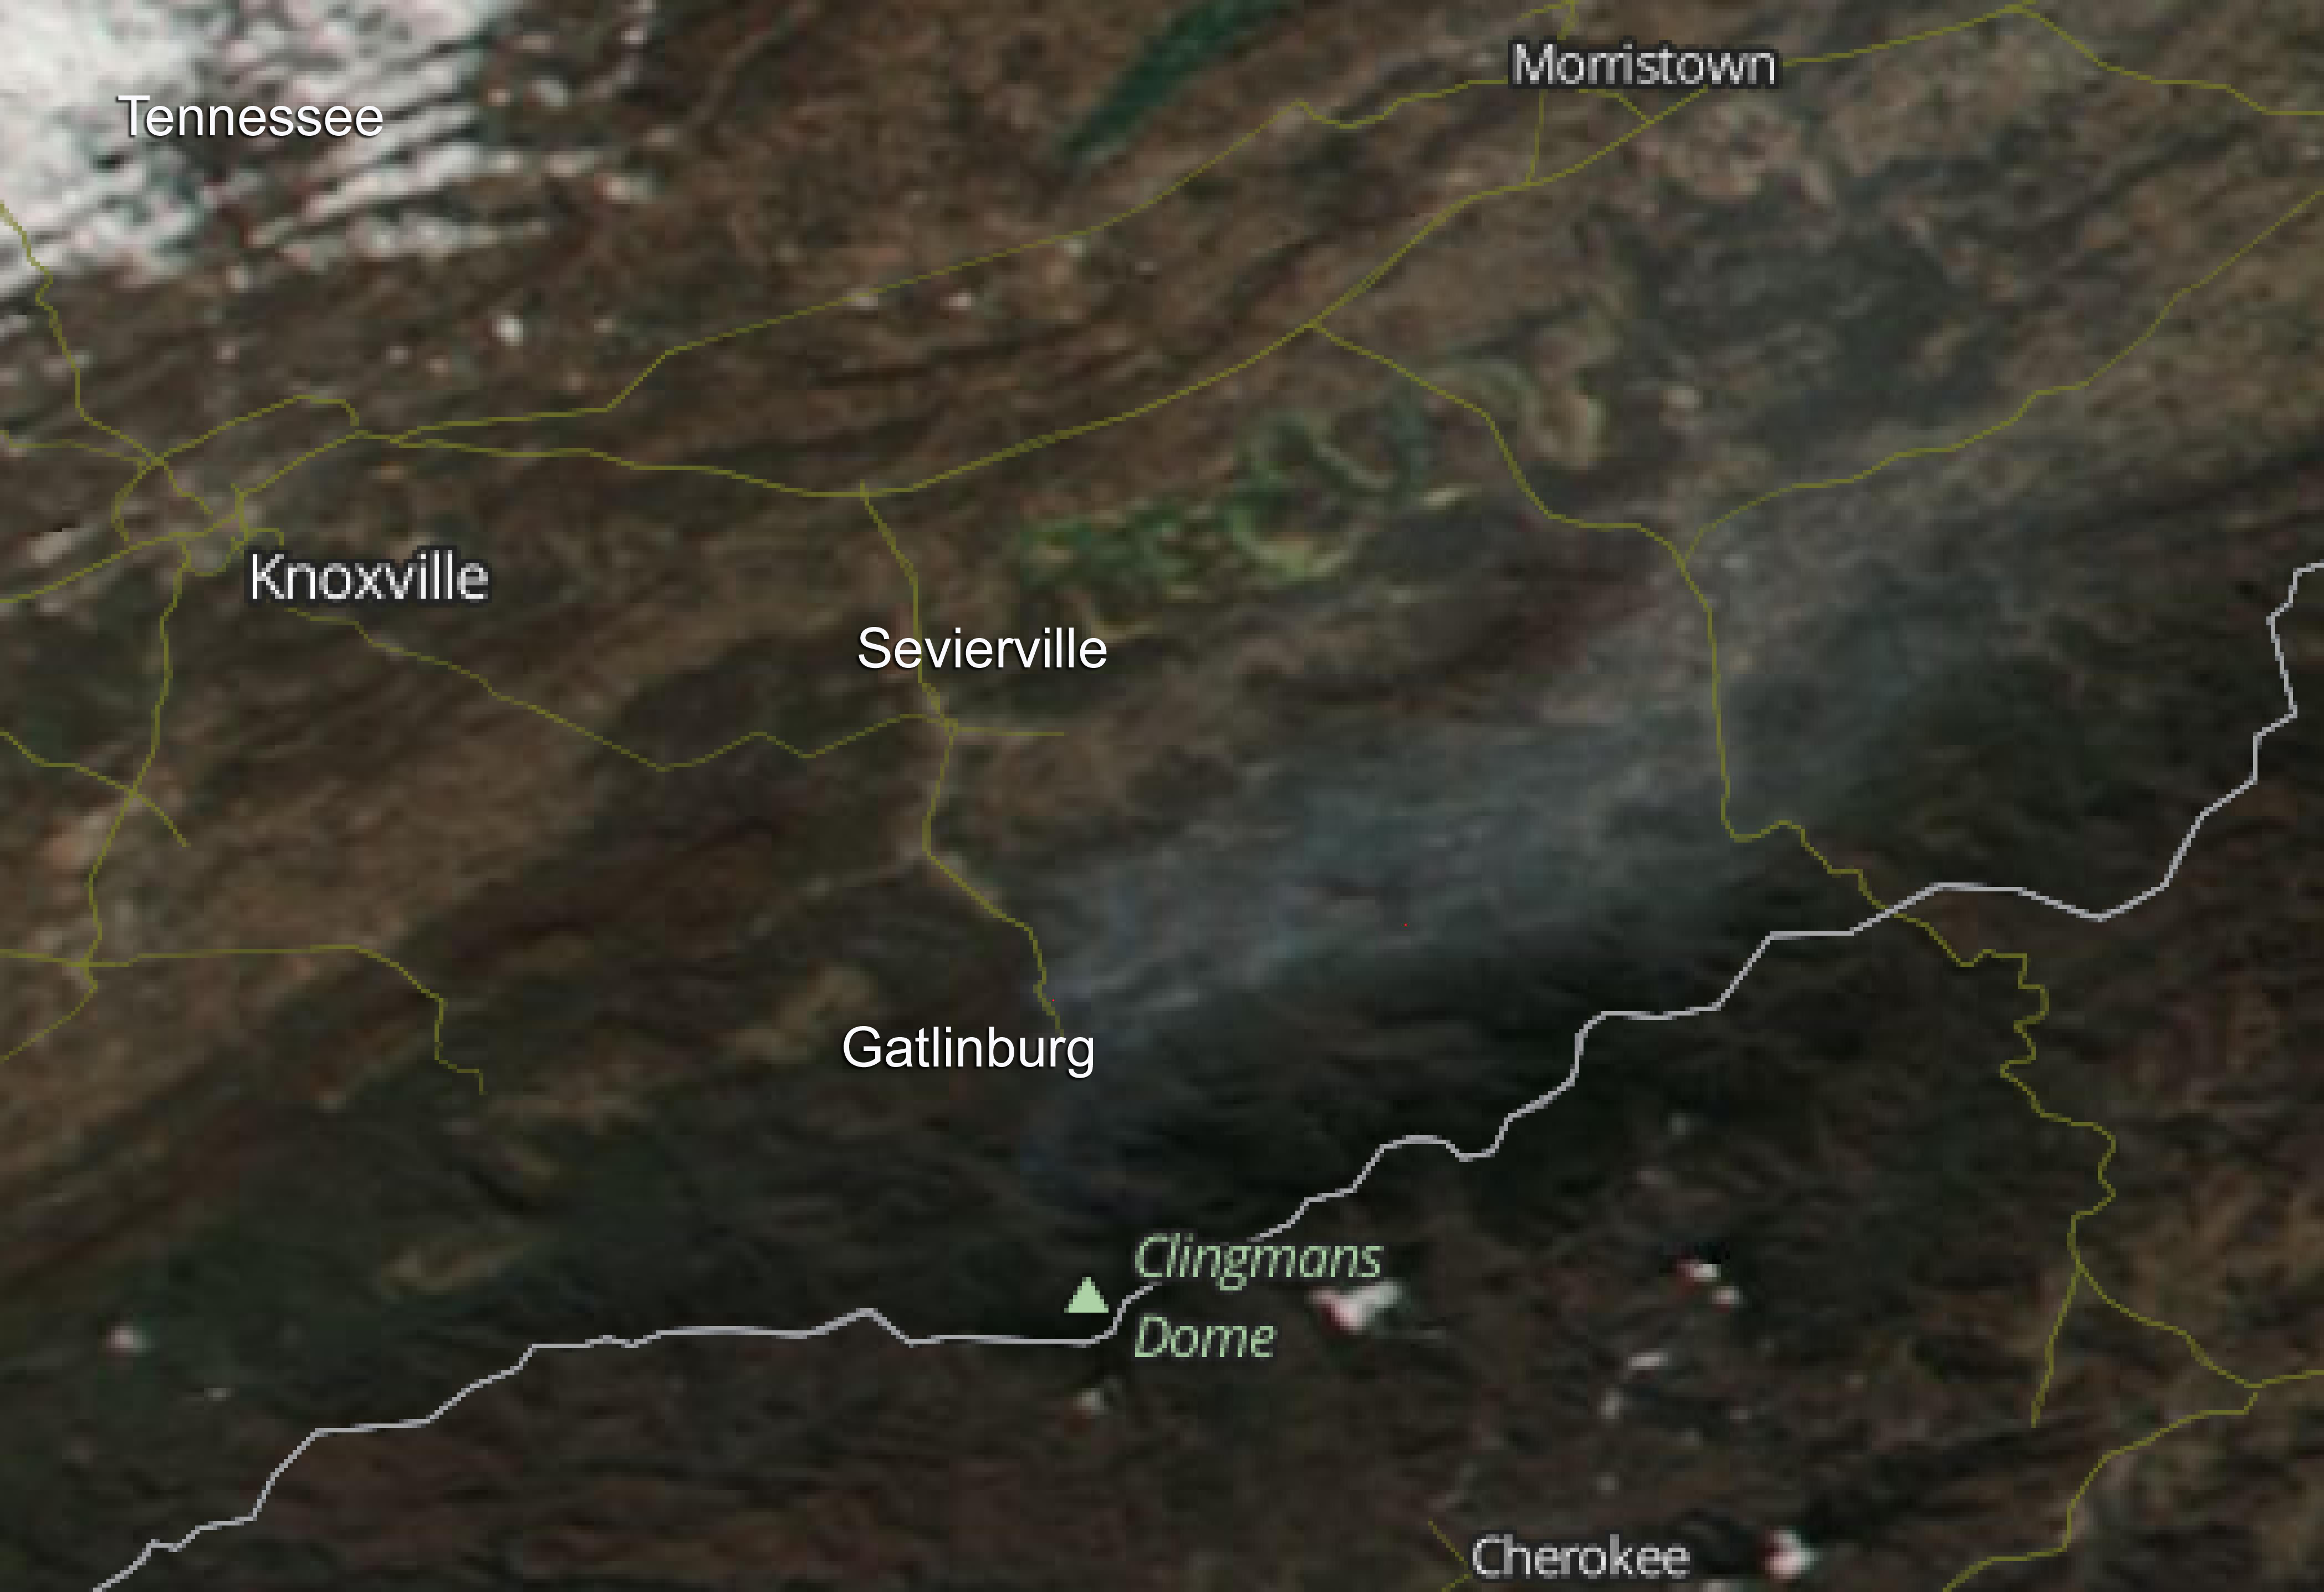 Suomi Npp Image Of Smoke From Fires In Tennessee